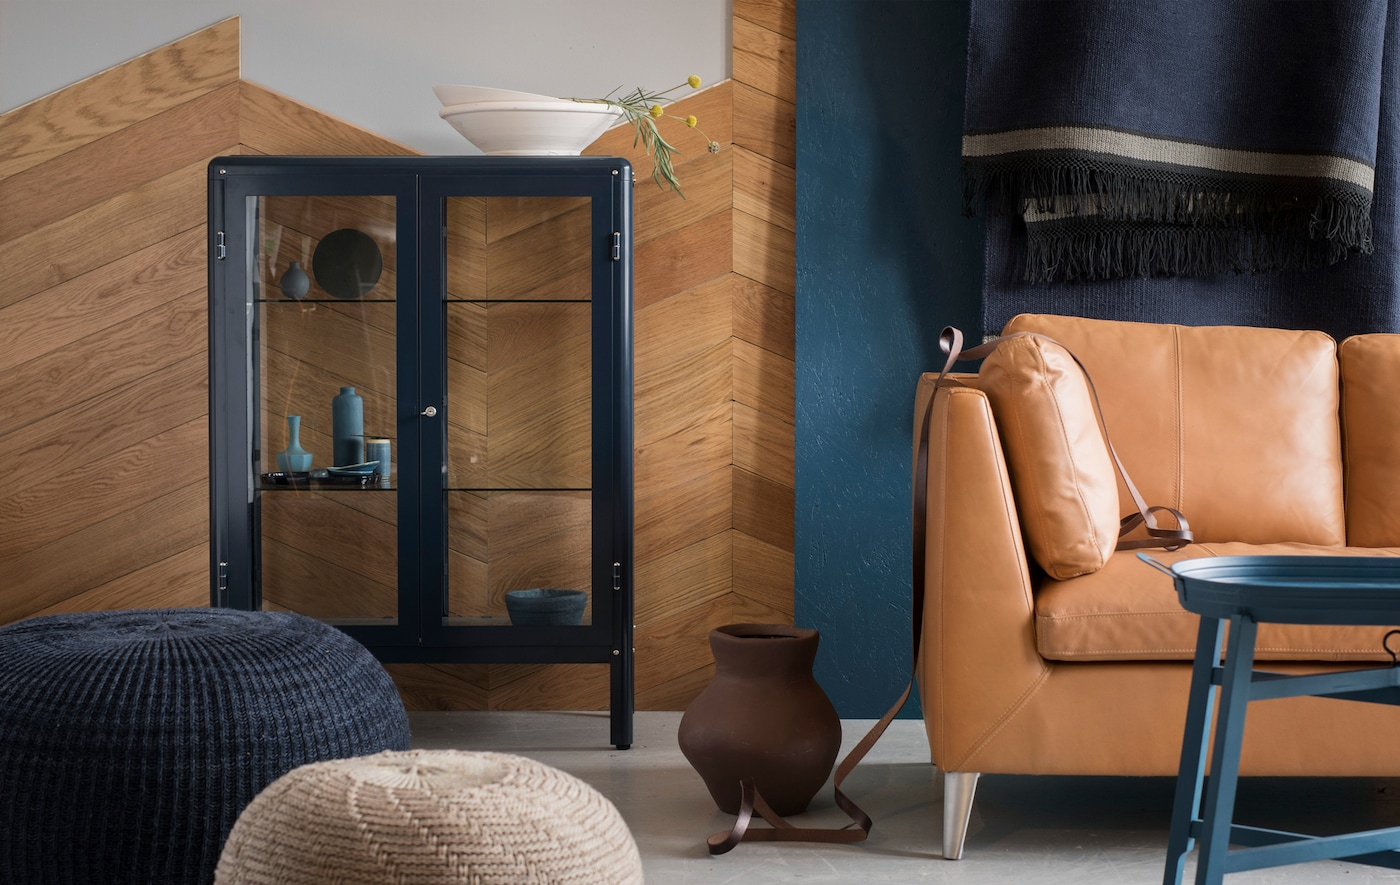 A blue and brown living area with a sofa, footstools and an IKEA FABRIKÖR glass-door cabinet in blue.